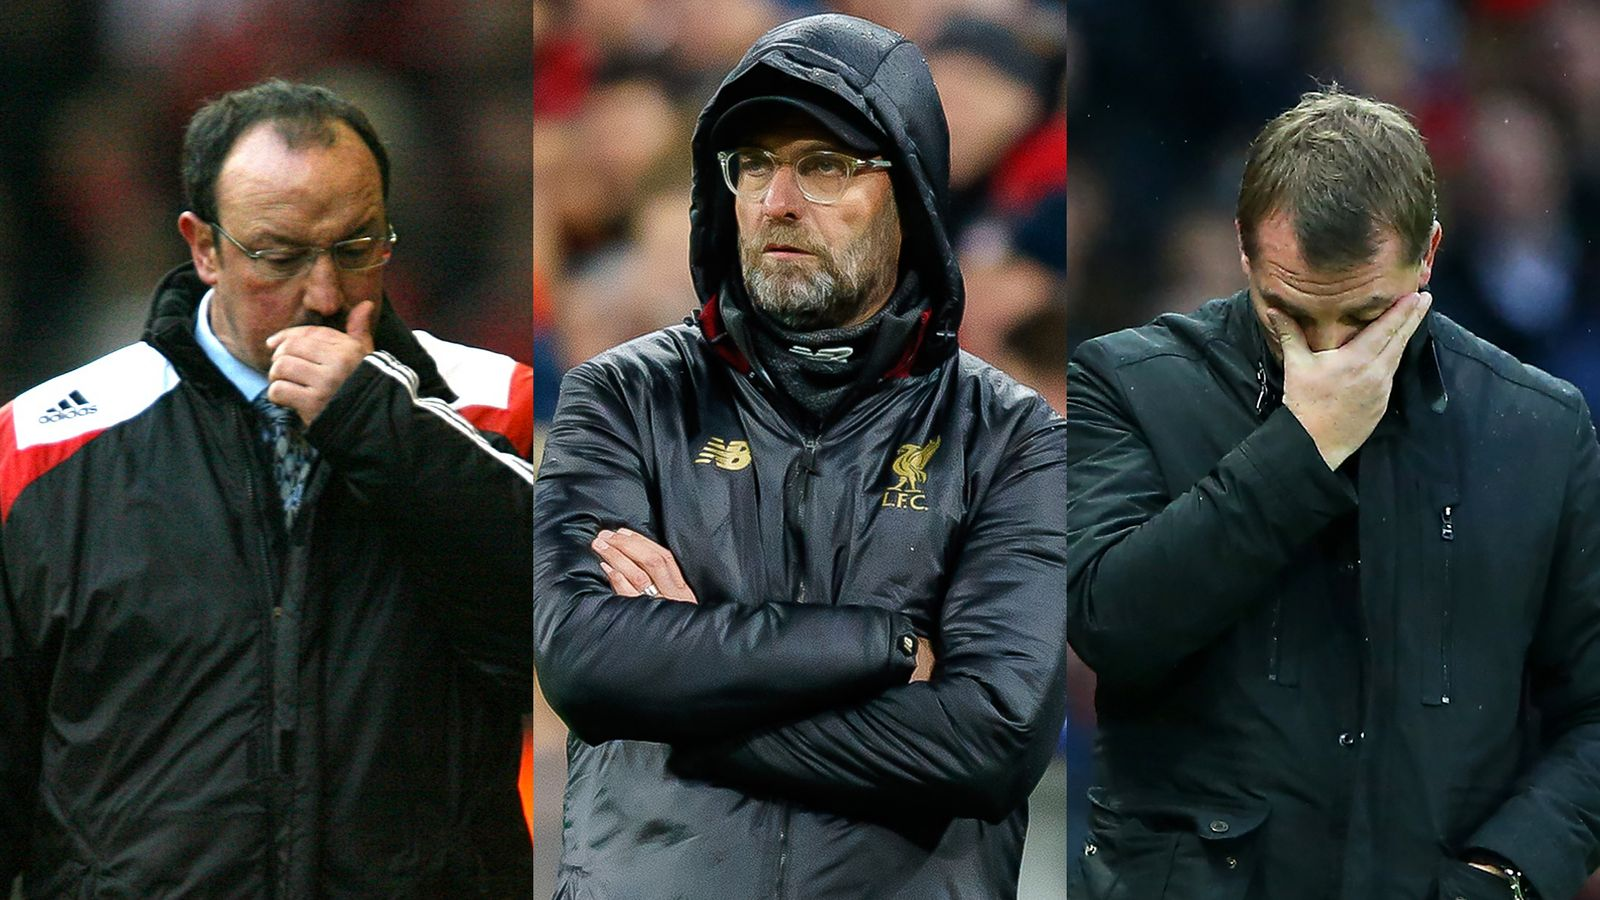 Liverpool's title collapses: What went wrong?